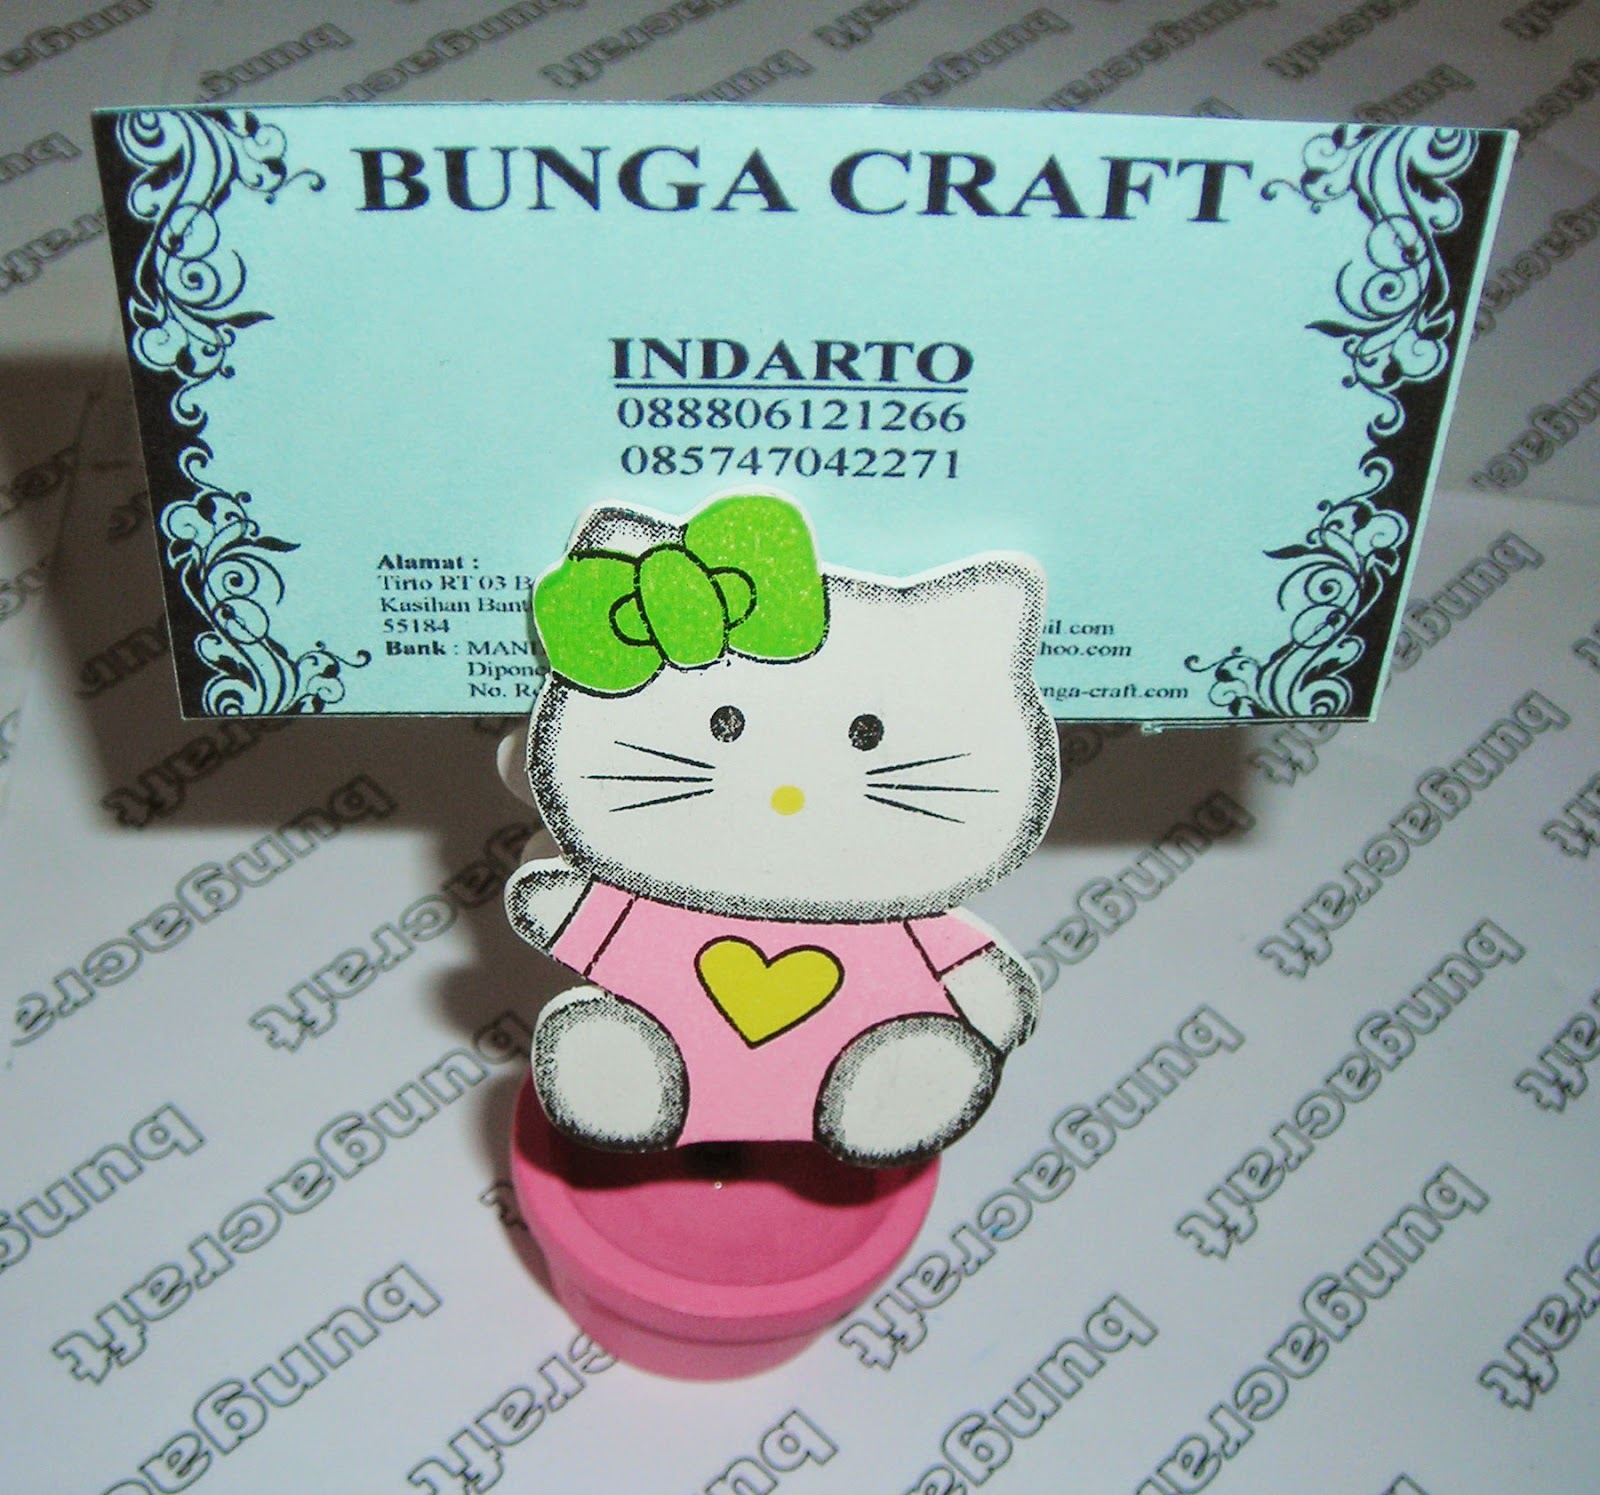 http://www.bunga-craft.com/